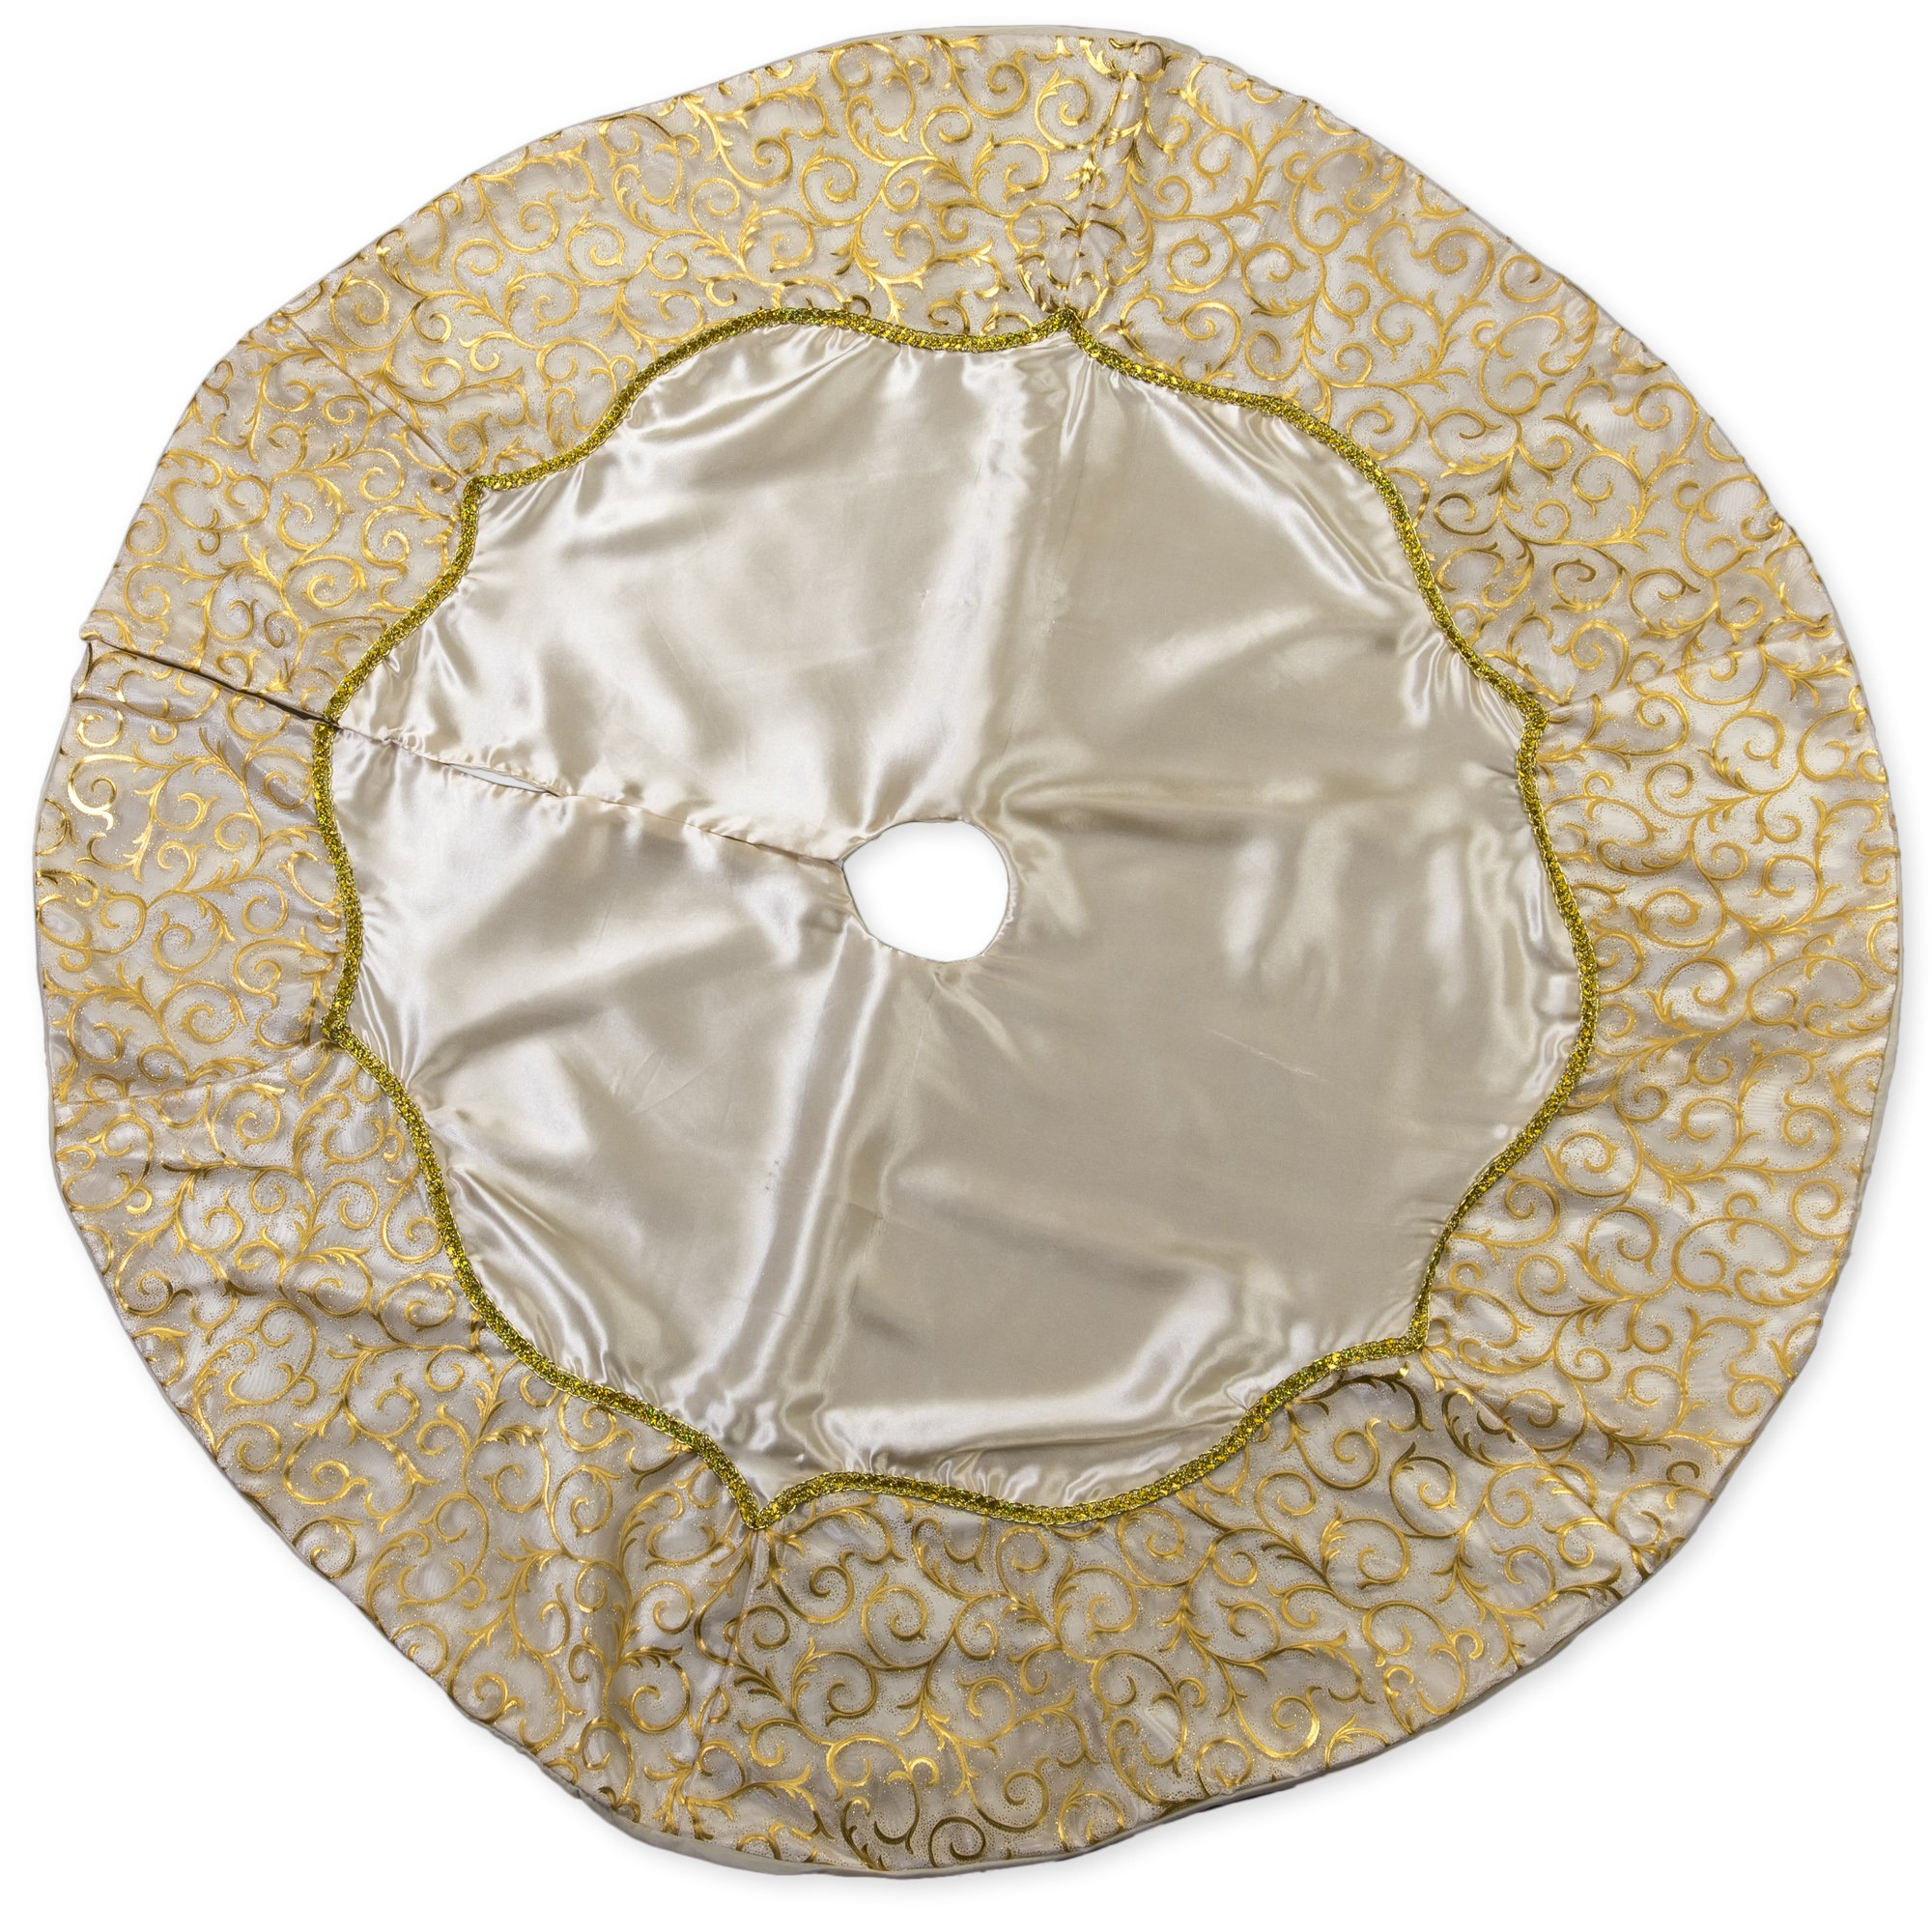 48 inch Solid Gold Toned Plush Fabric Christmas Tree Skirt with Swirl Satin Trim